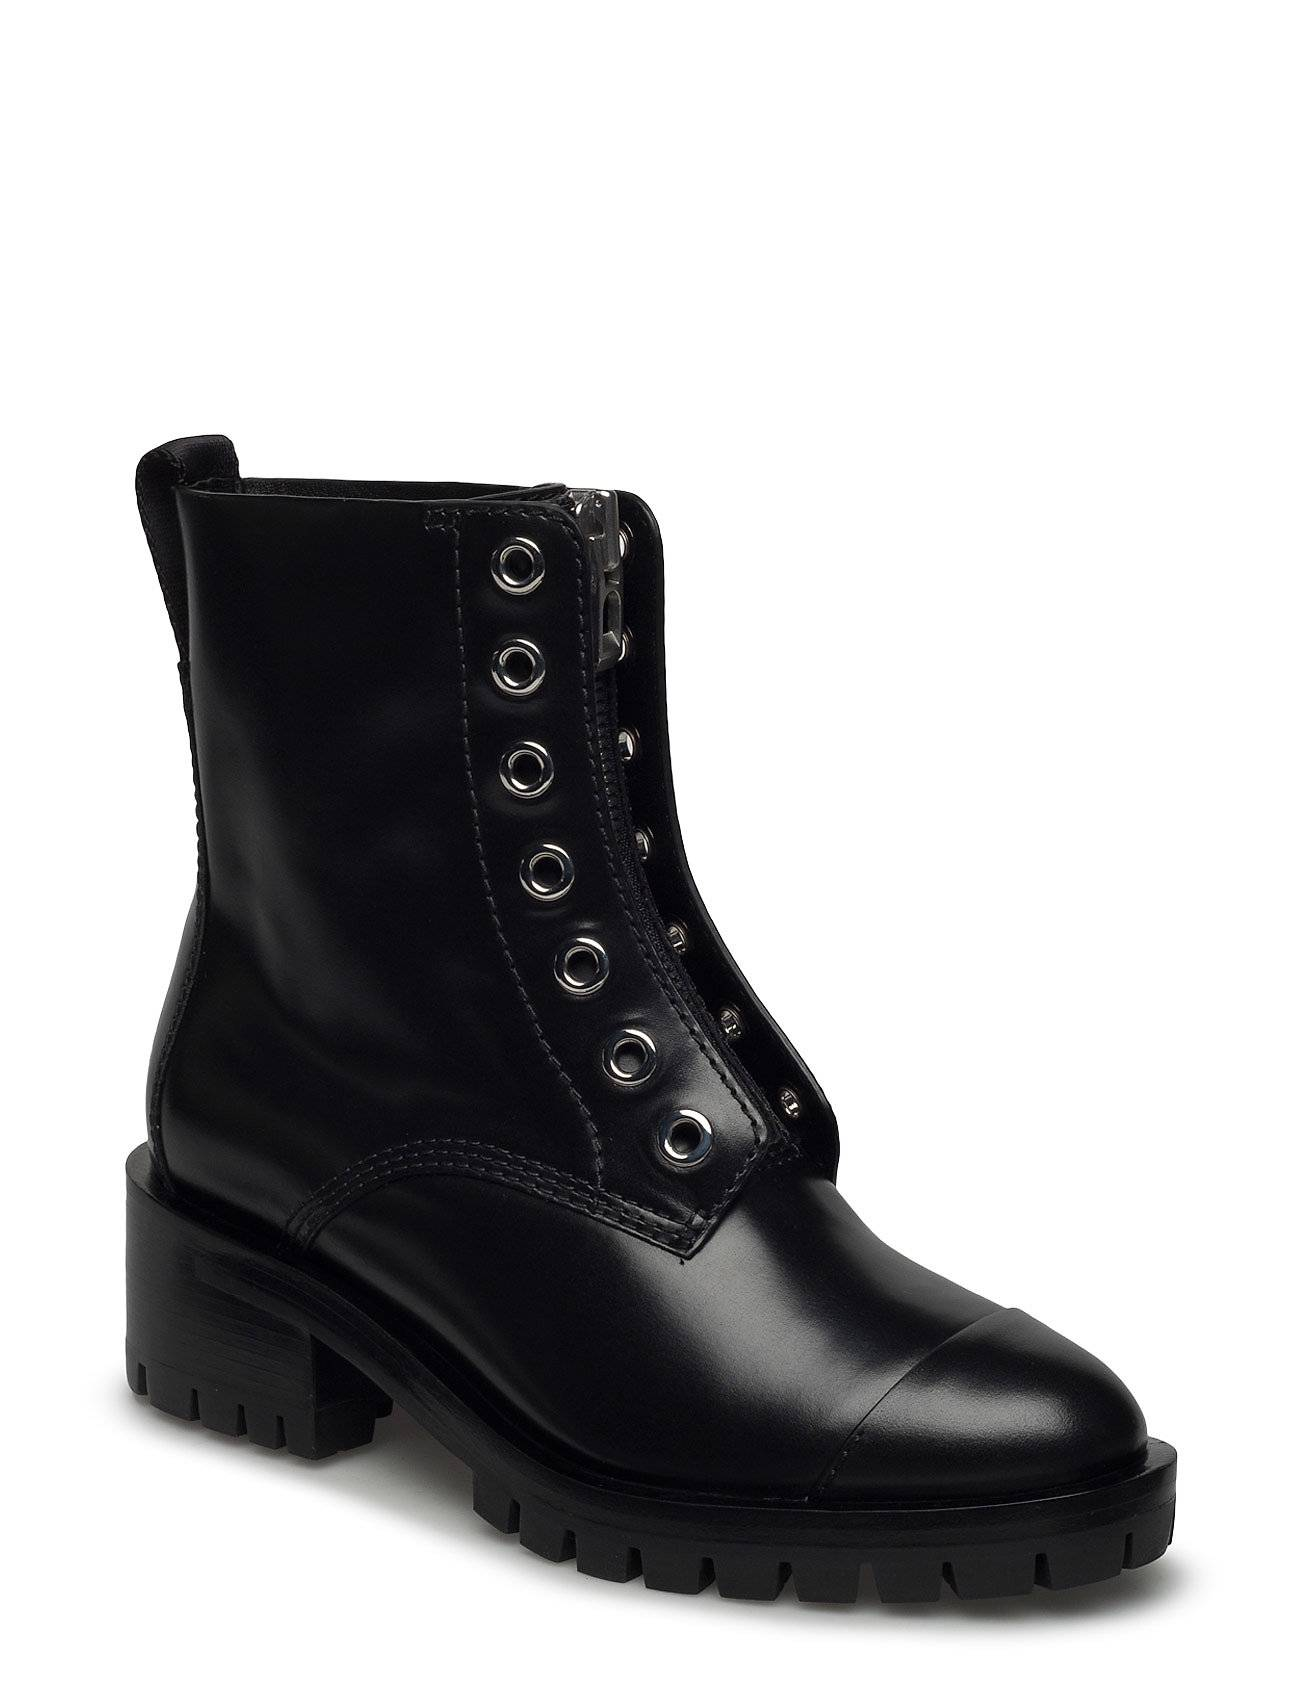 3.1 Phillip Lim Hayett - Lug Sole Zipper Boot With Knitted Lace